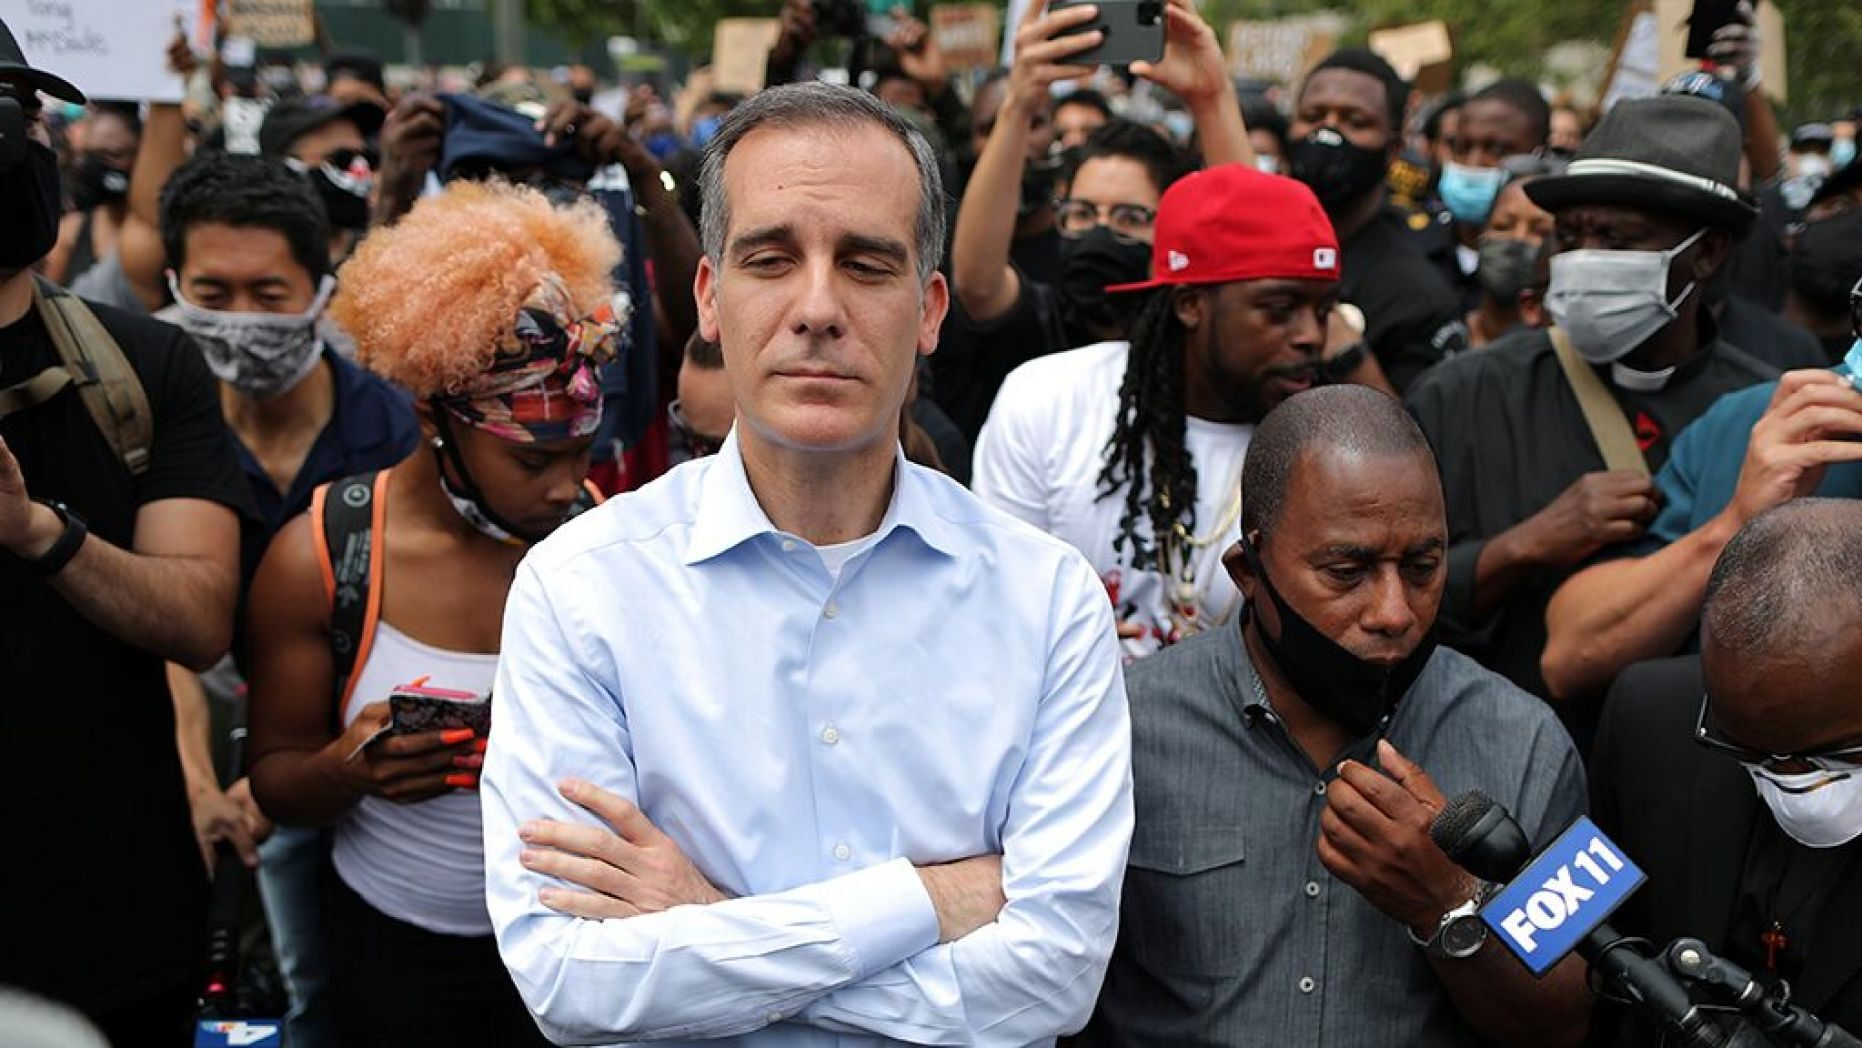 A Los Angeles police officer who was once assigned to Mayor Eric Garcetti's security detail claims in a lawsuit that an aide sexually harassed him for years in the presence of the mayor.